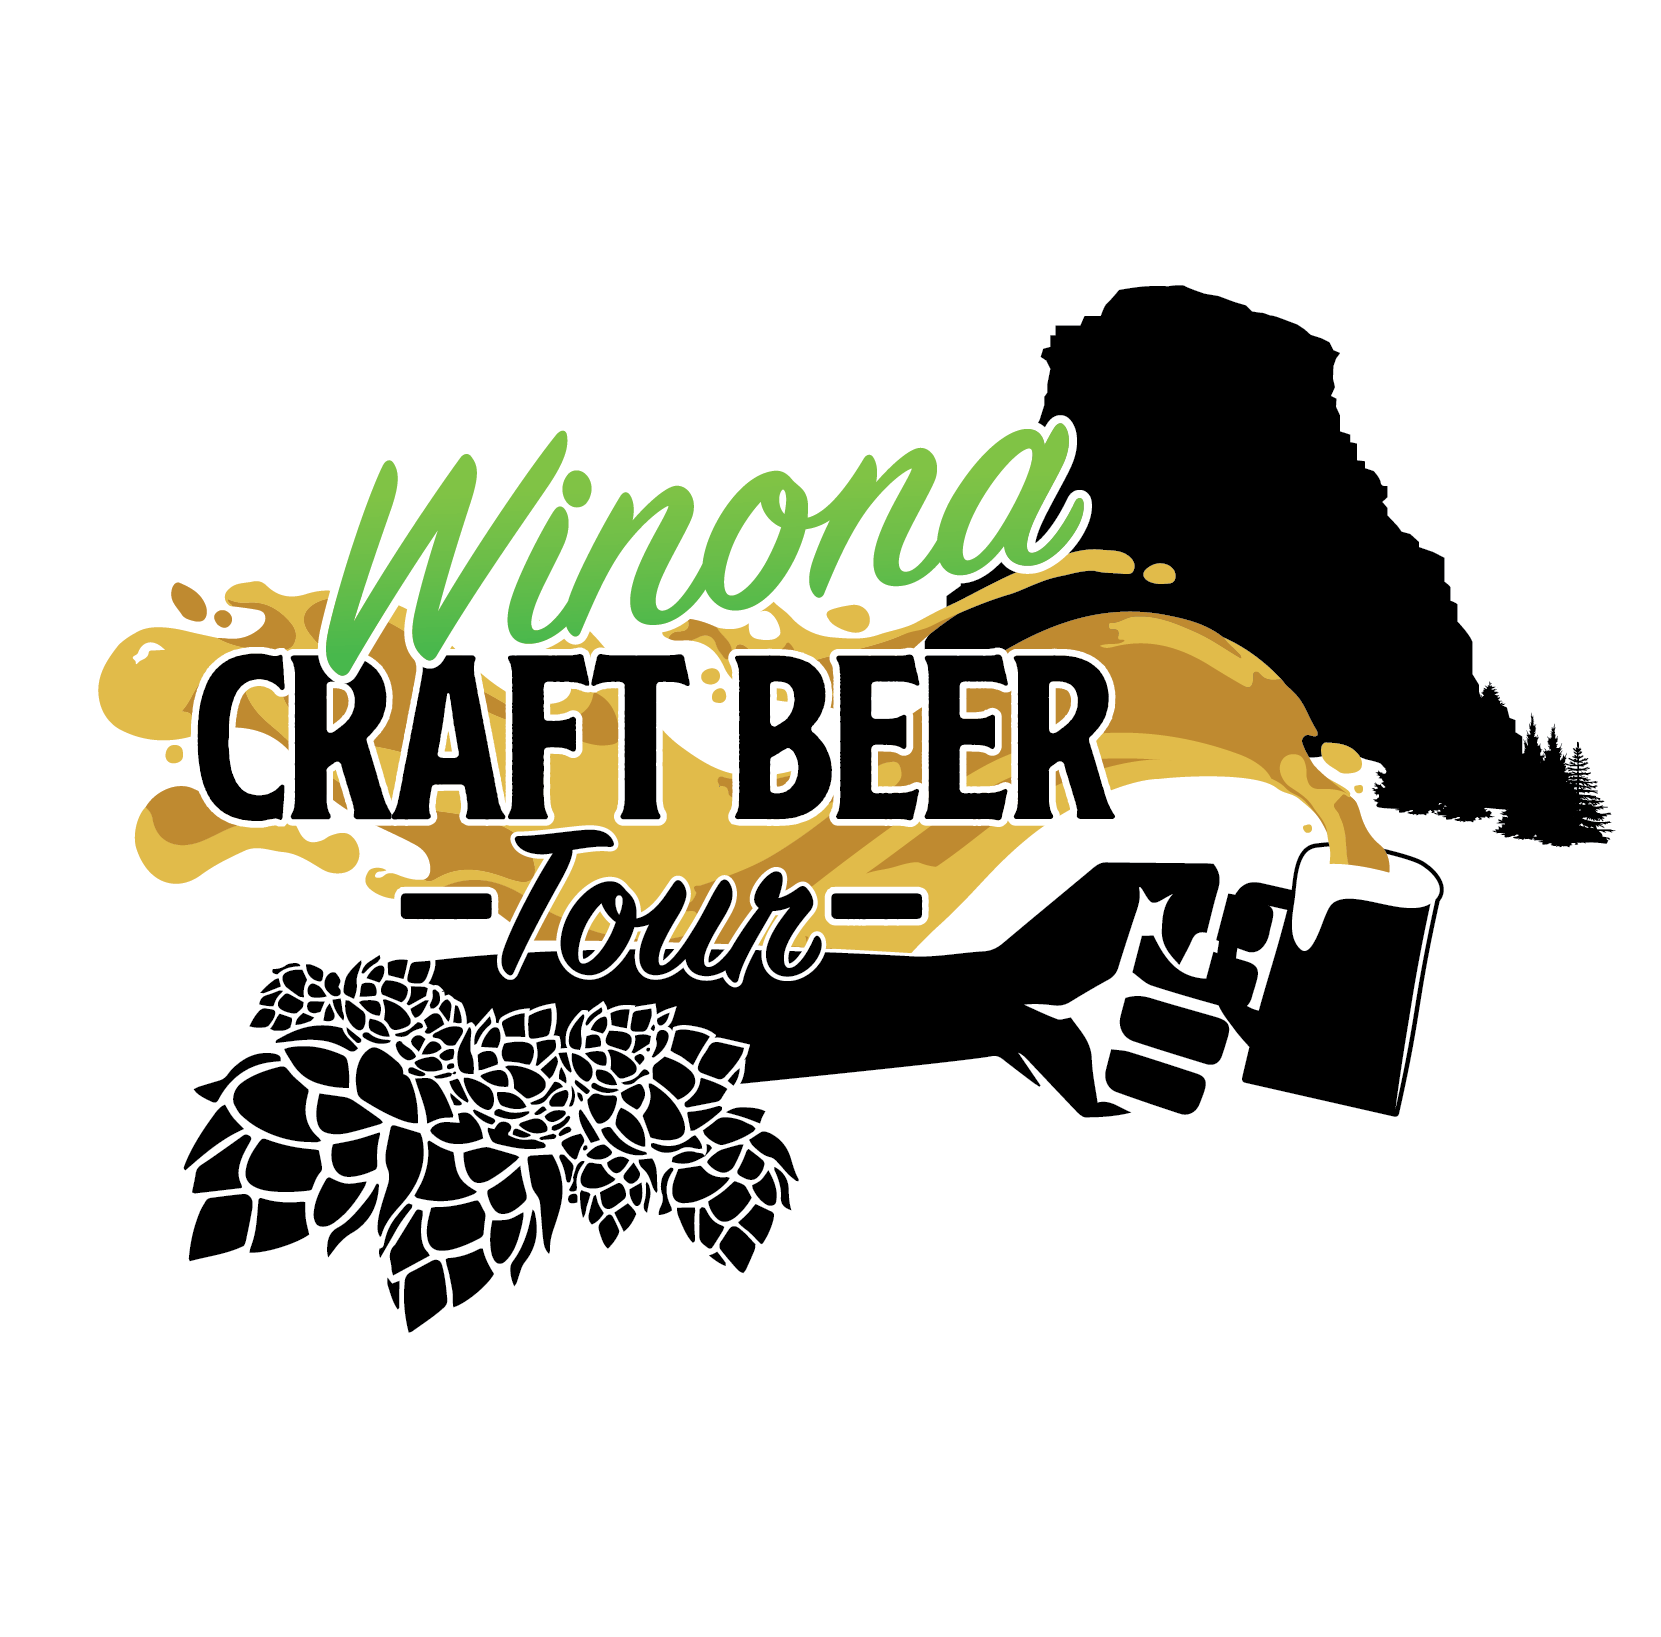 Winona Craft Beer Tour